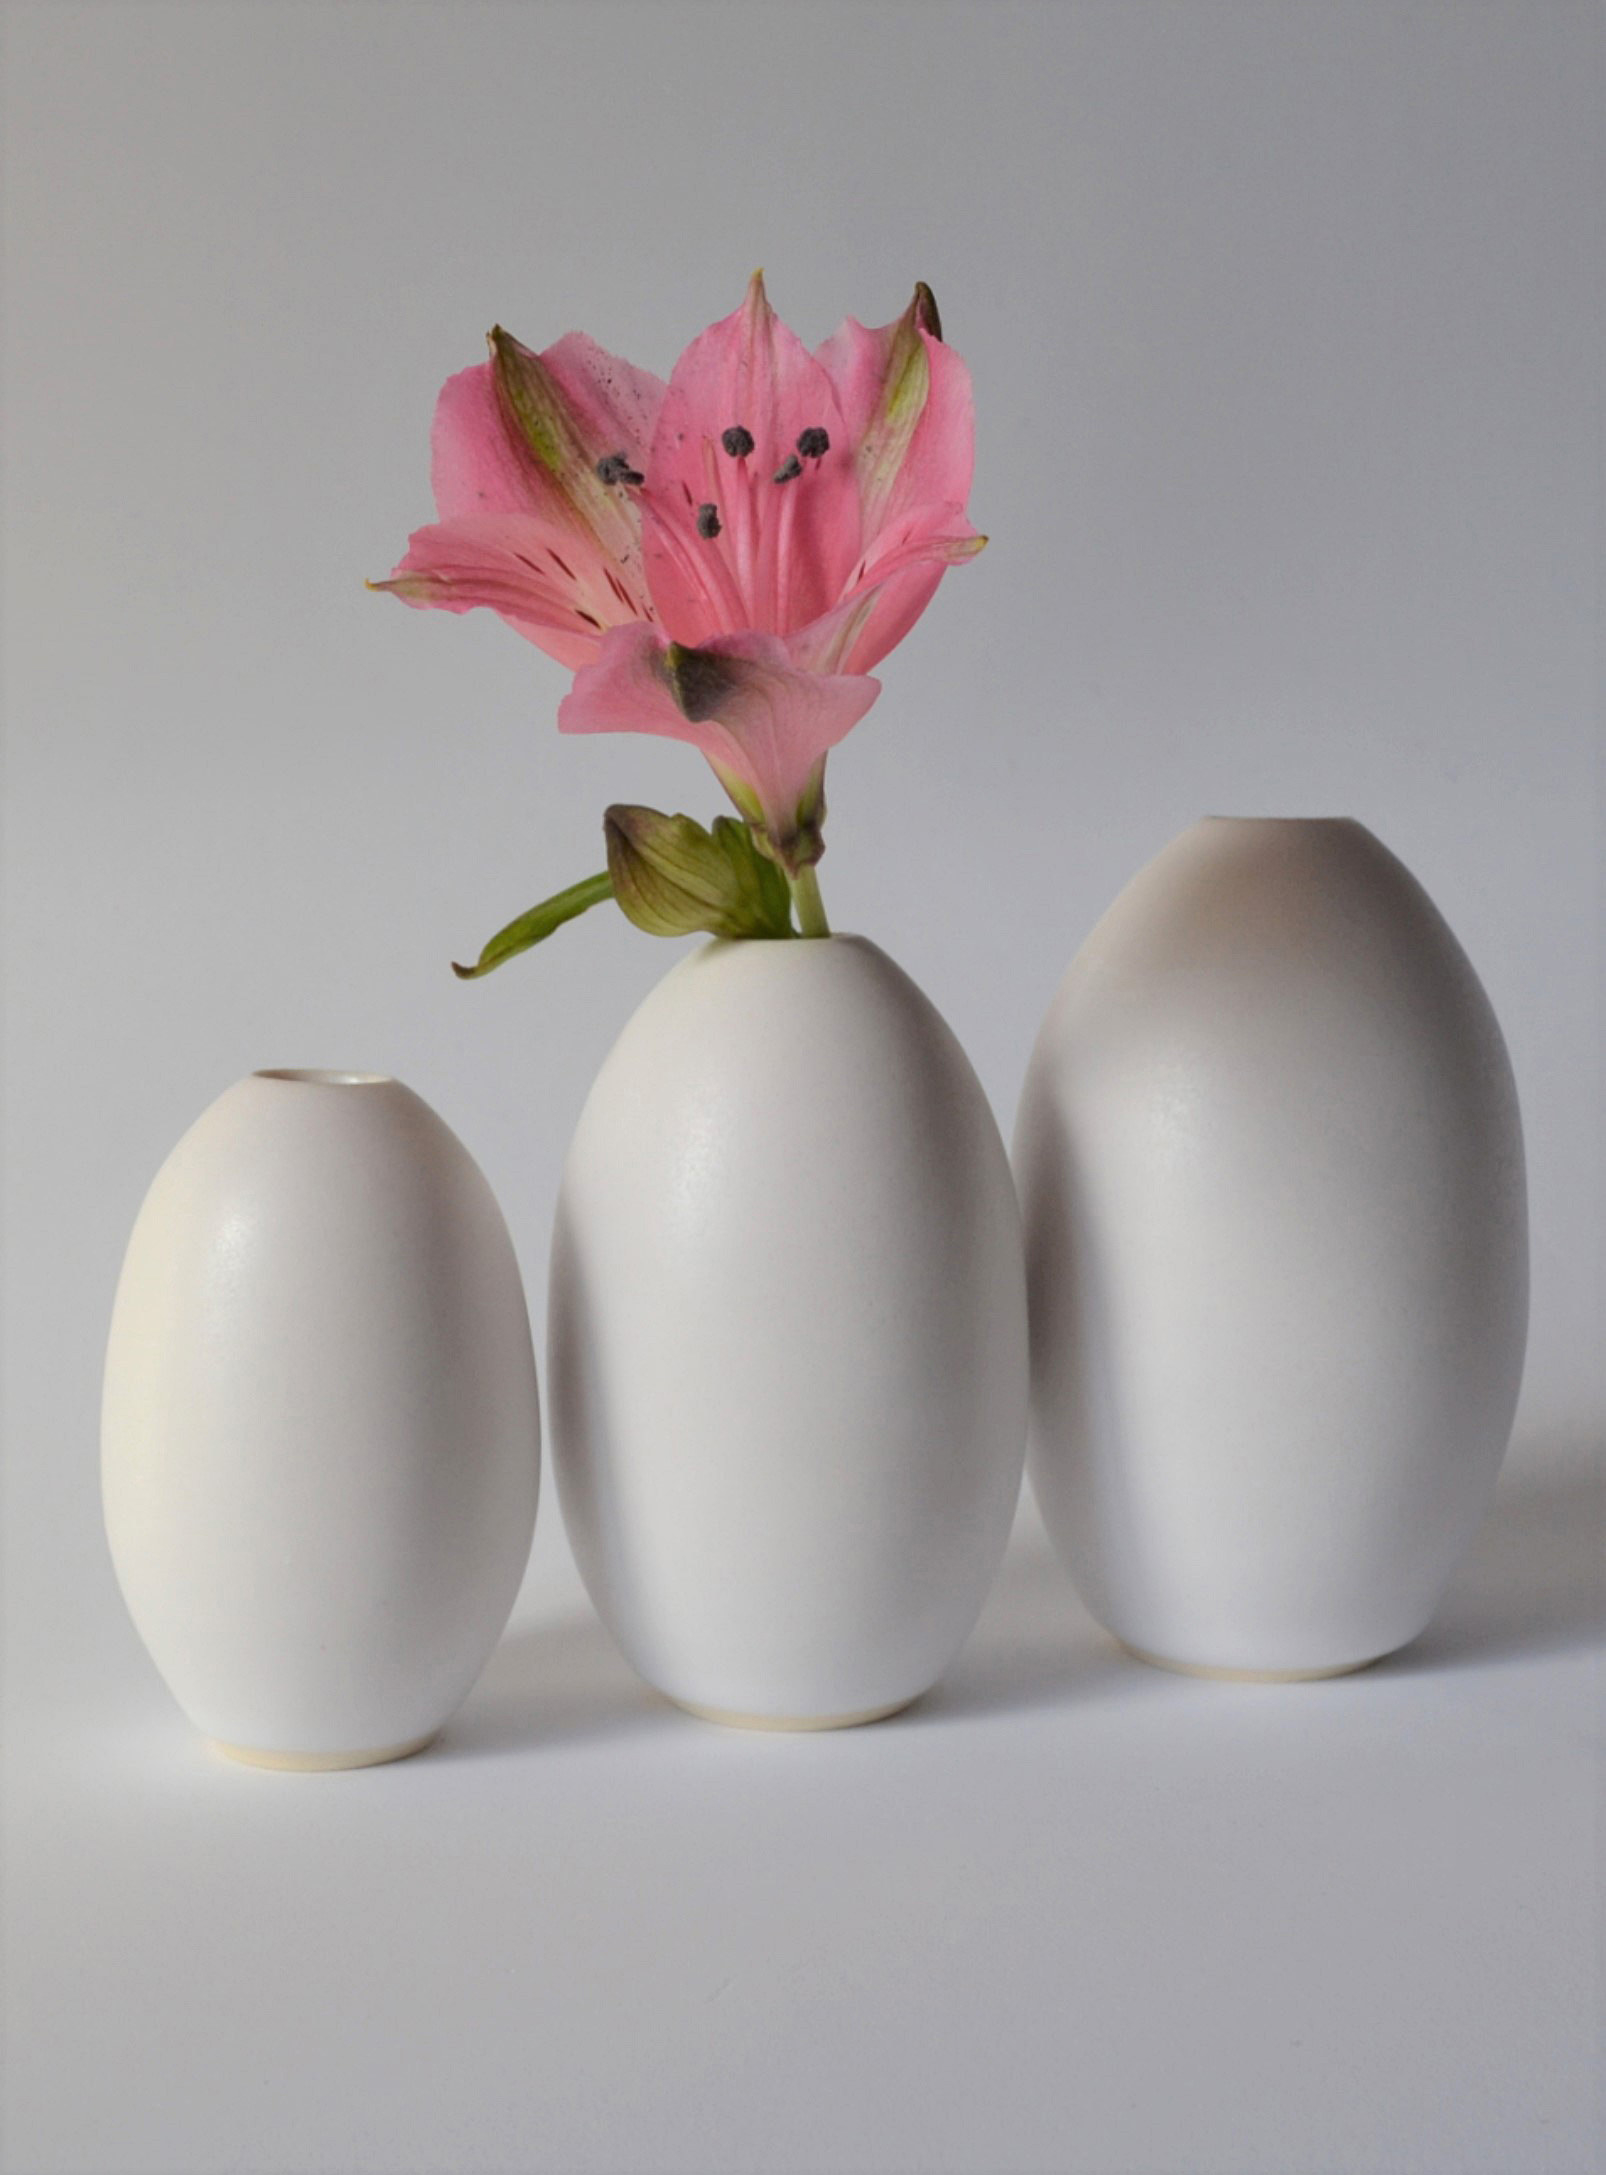 the three vases in a line with the middle one with a flower in it